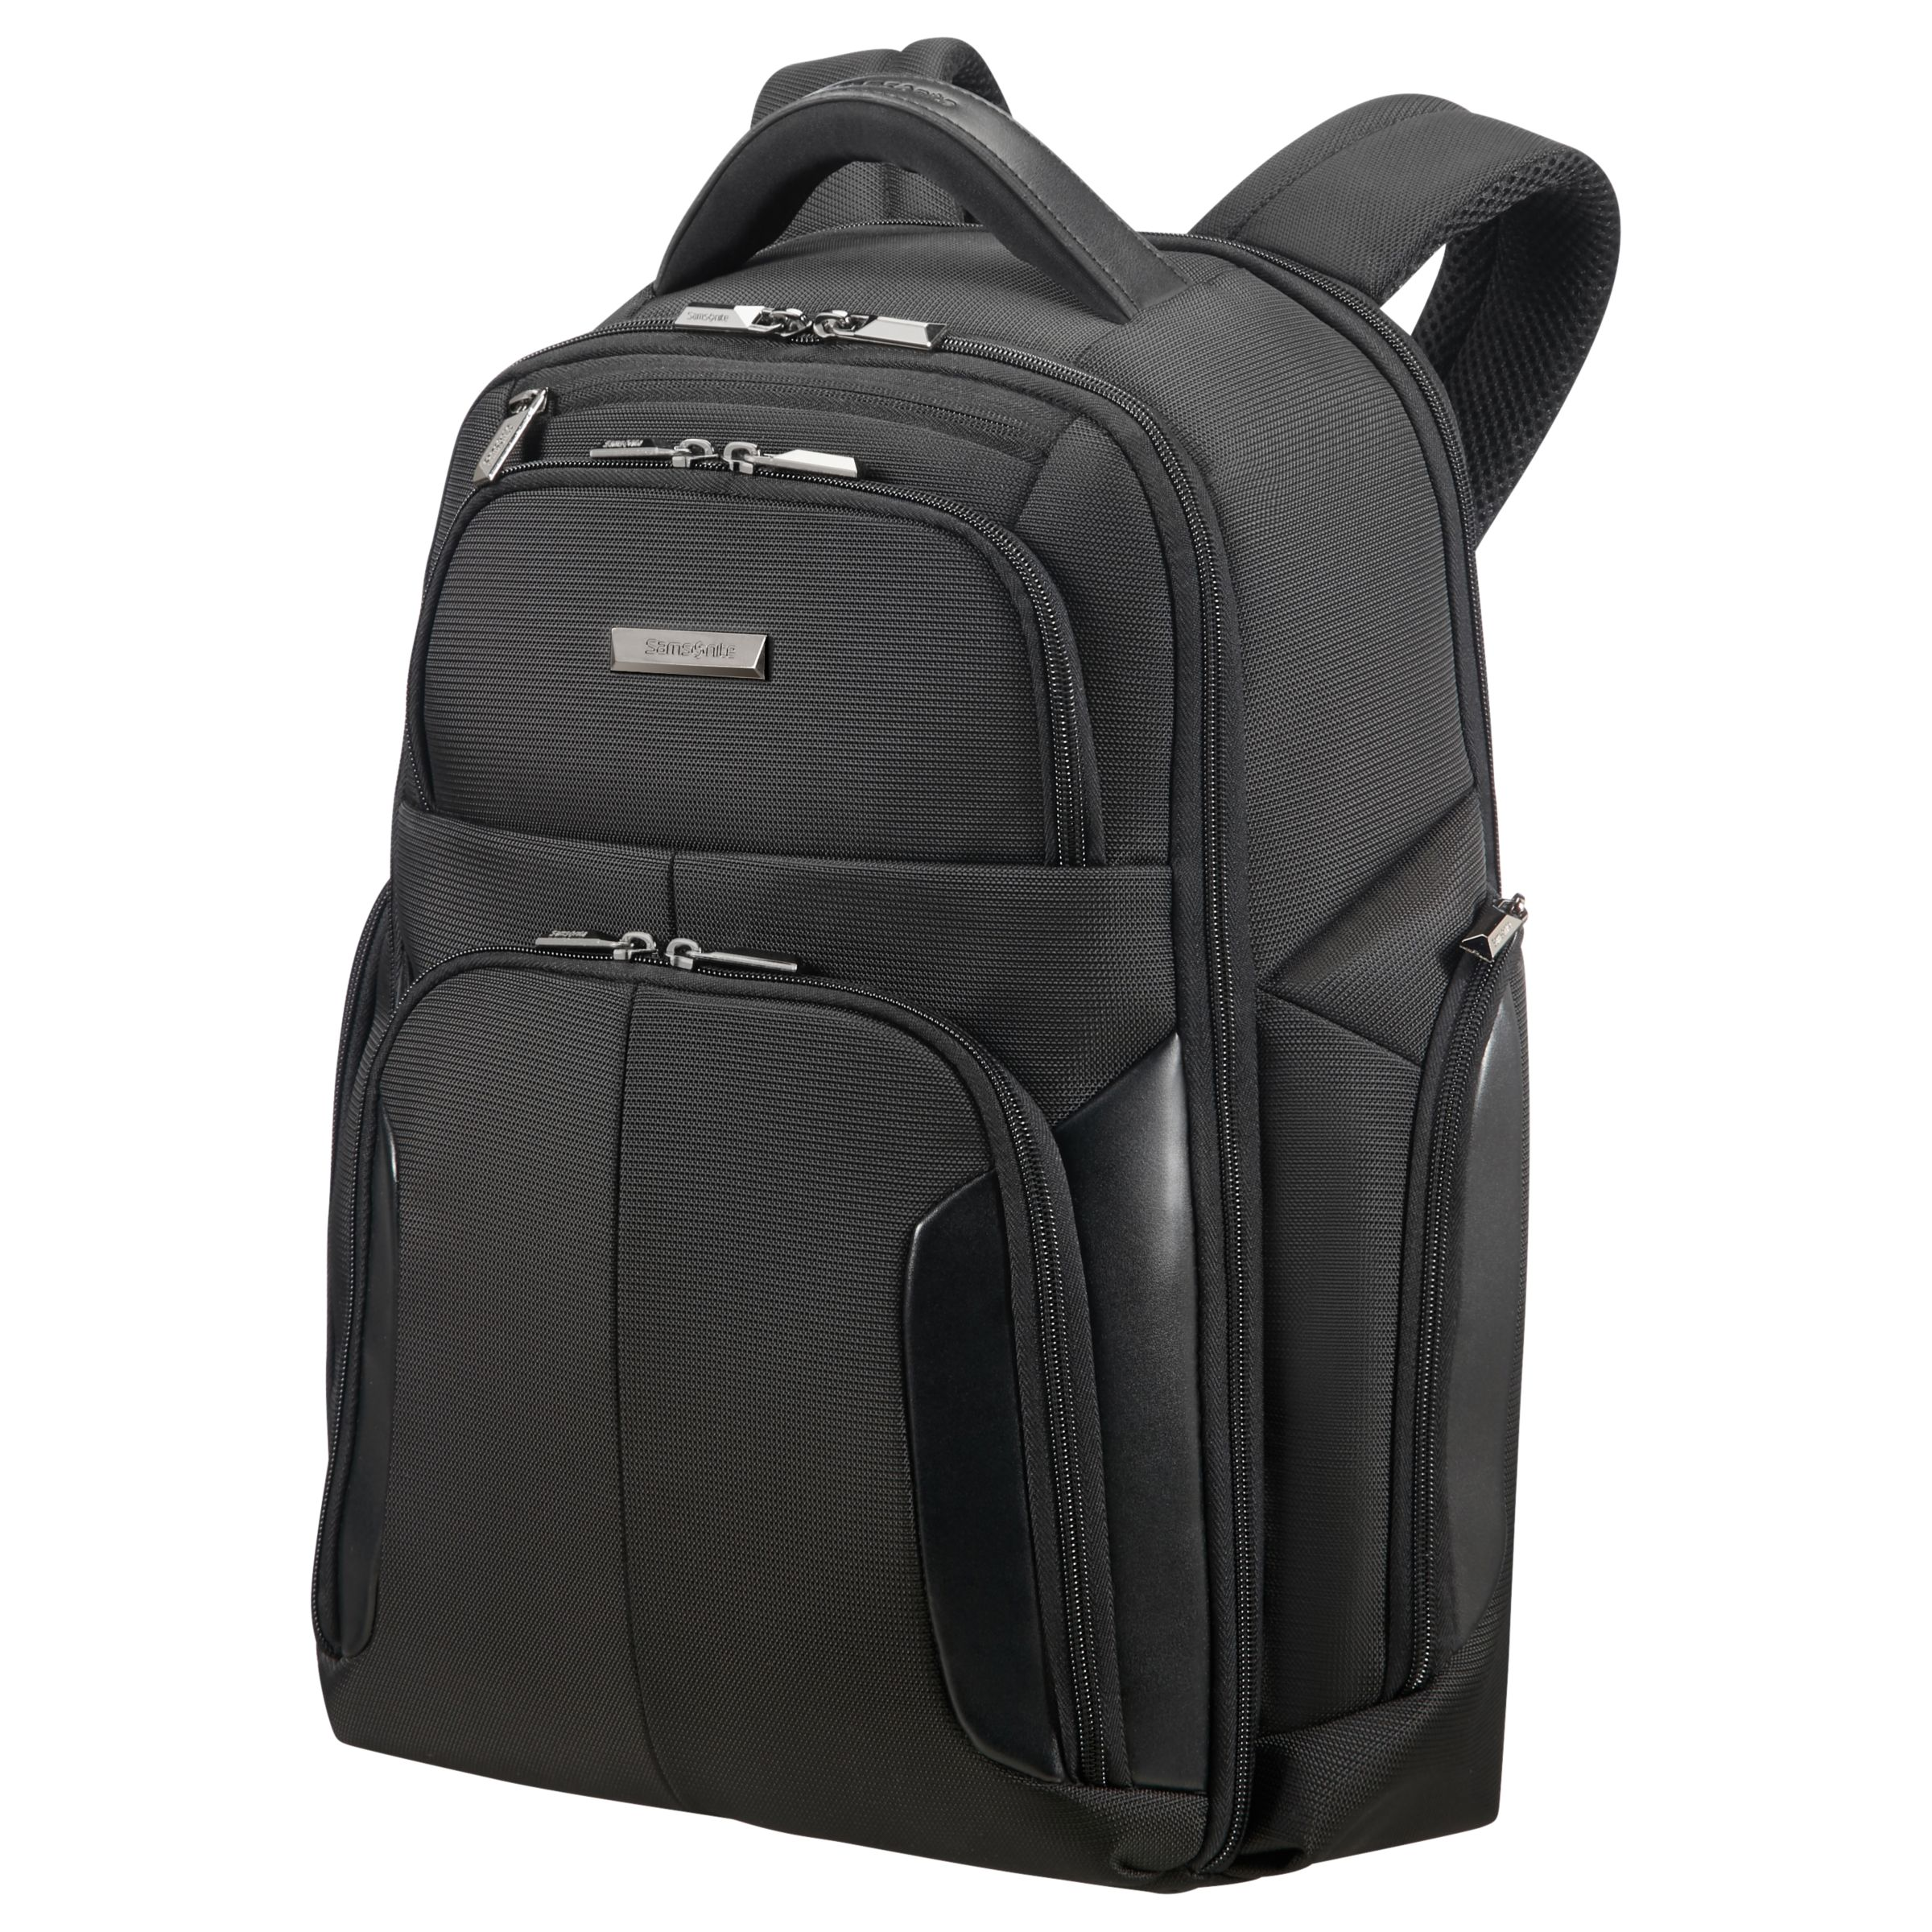 Samsonite Samsonite XBR 15.6 Laptop Backpack, Black